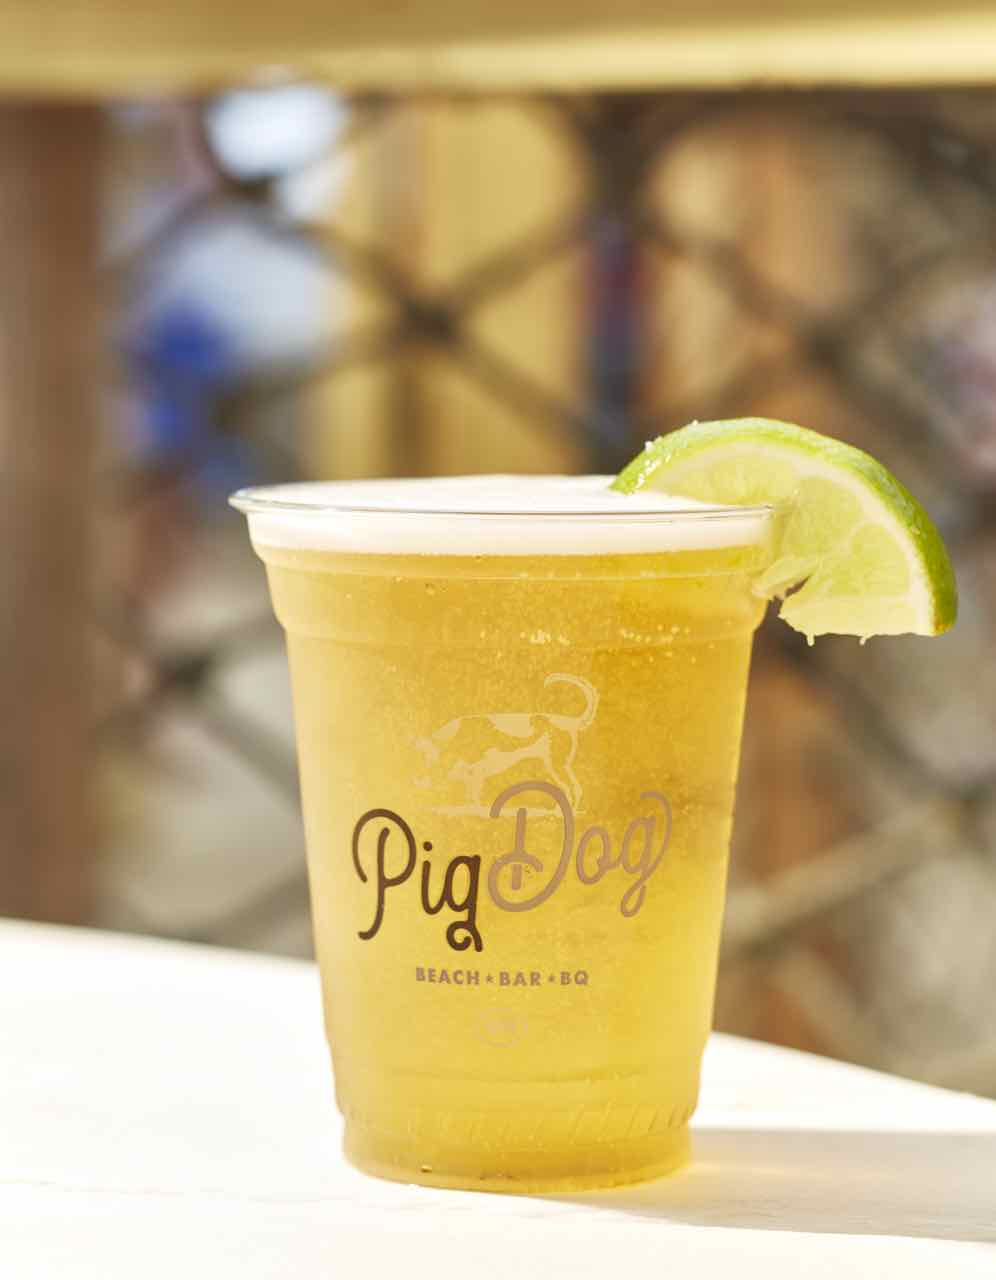 Pig Dog Draft Beer